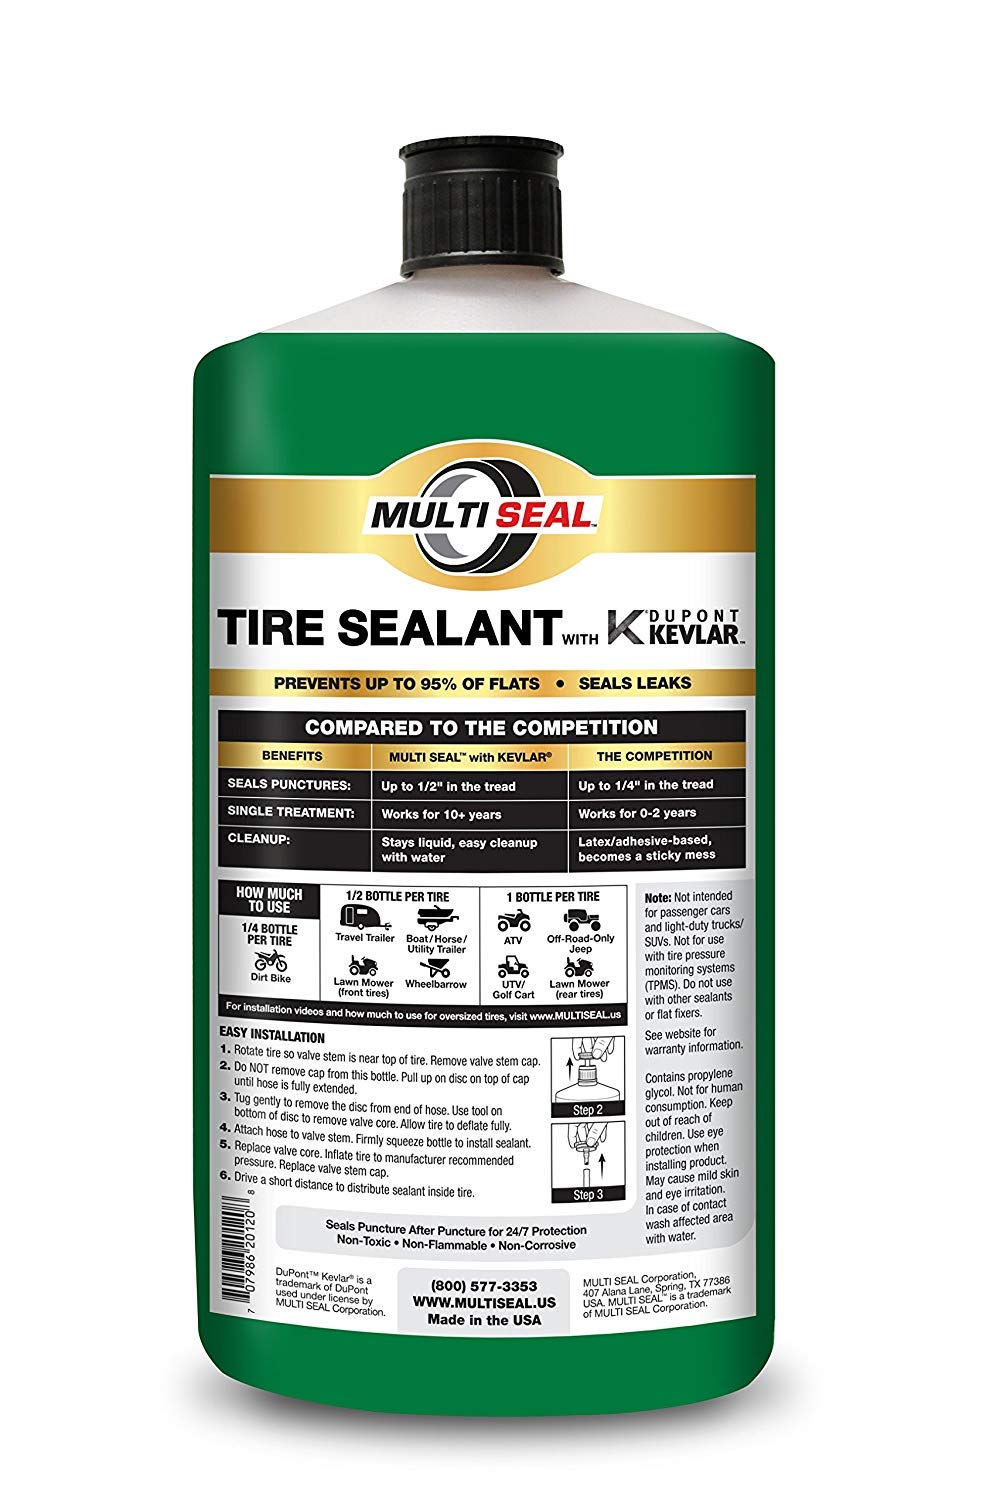 MULTI SEAL 20128 Tire Sealant with Kevlar (Outdoor Power Equipment Formula), Great for Lawn Mowers, Small Tractors, Wheelbarrows, Wood Chippers, Snow Blowers and more, 8-Pack (256 oz.) by MULTI SEAL (Image #1)